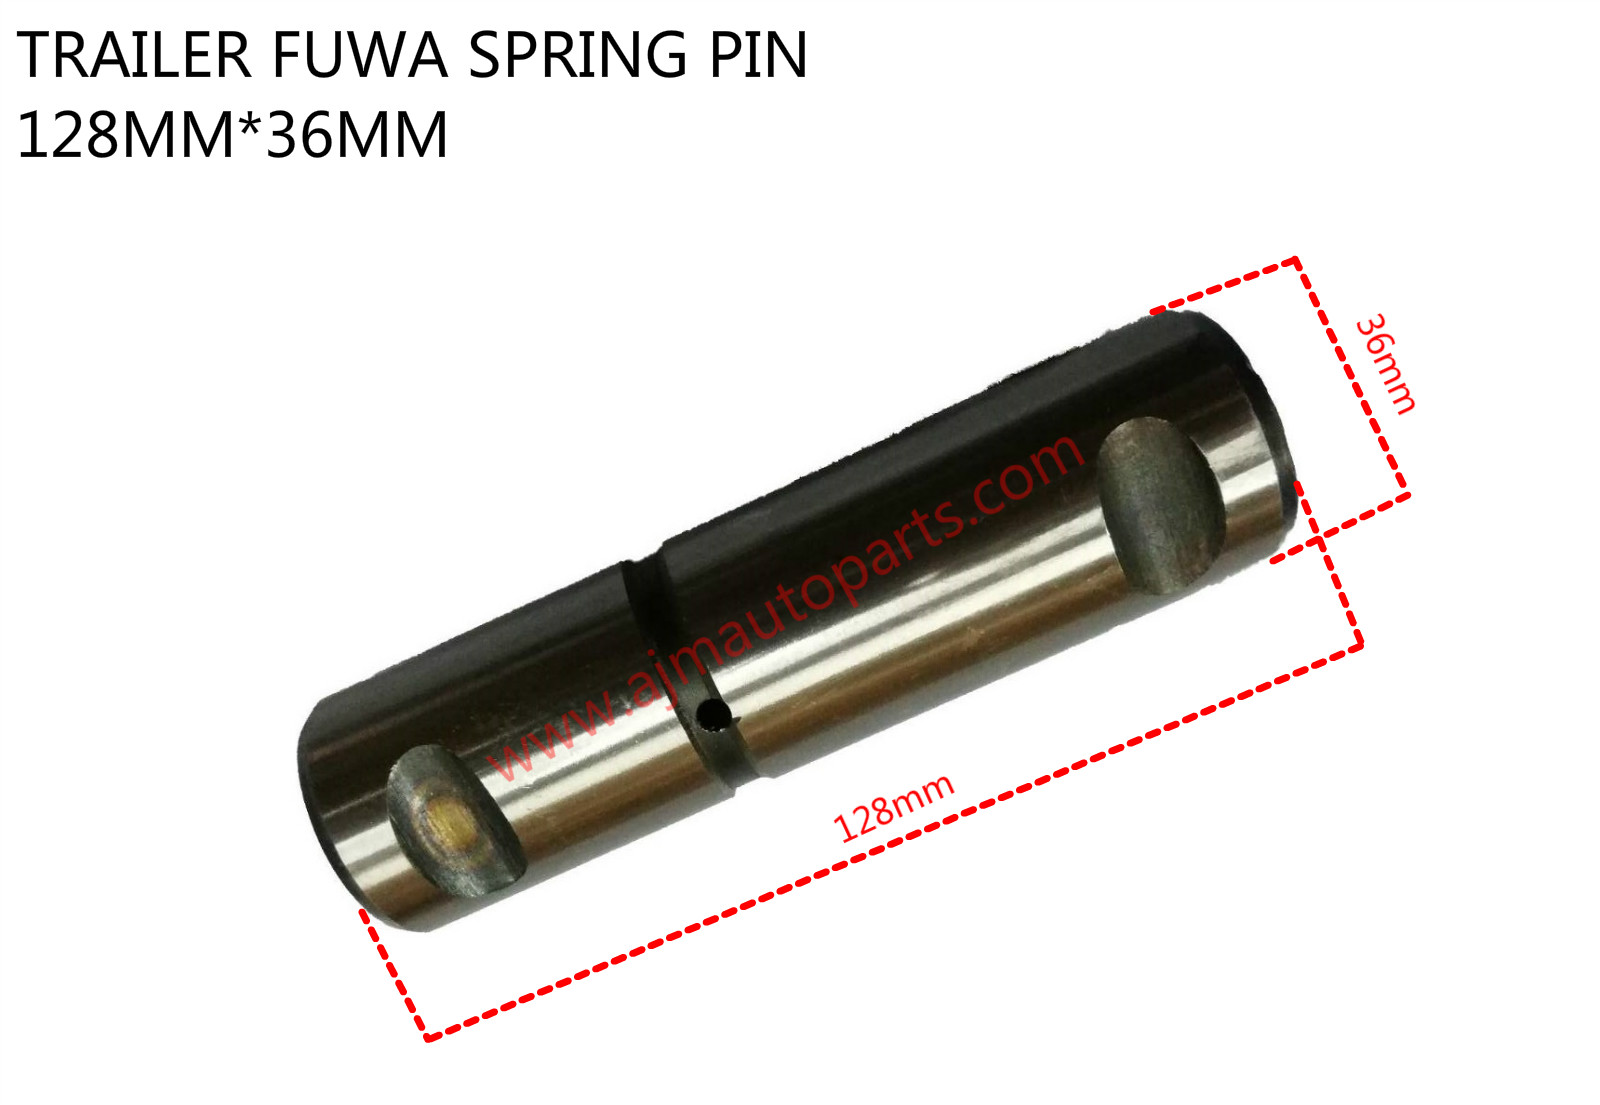 TRAILER FUWA SPRING PIN-36MMX128MM